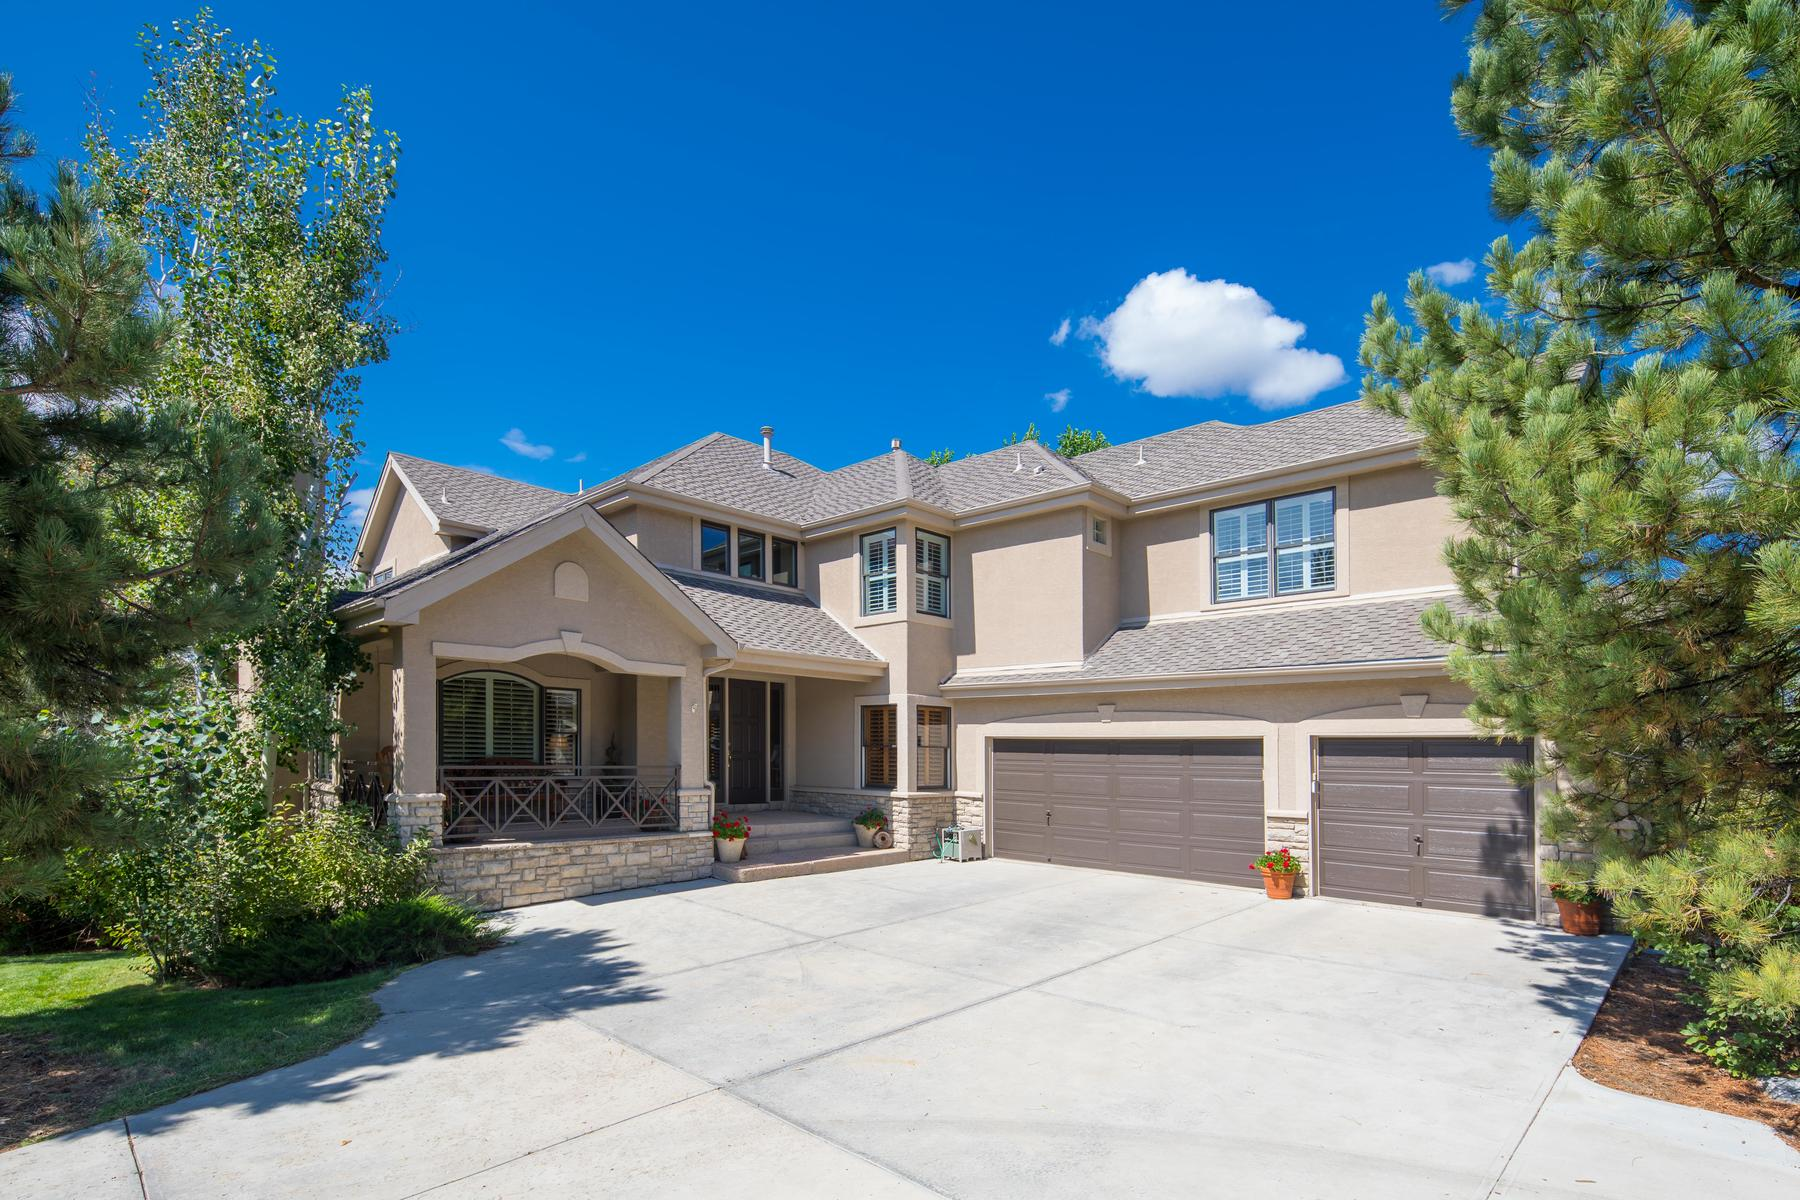 Single Family Home for Active at Welcome home to this immaculate and inviting home in Castle Pines Village! 742 Evening Star Ln Castle Rock, Colorado 80108 United States